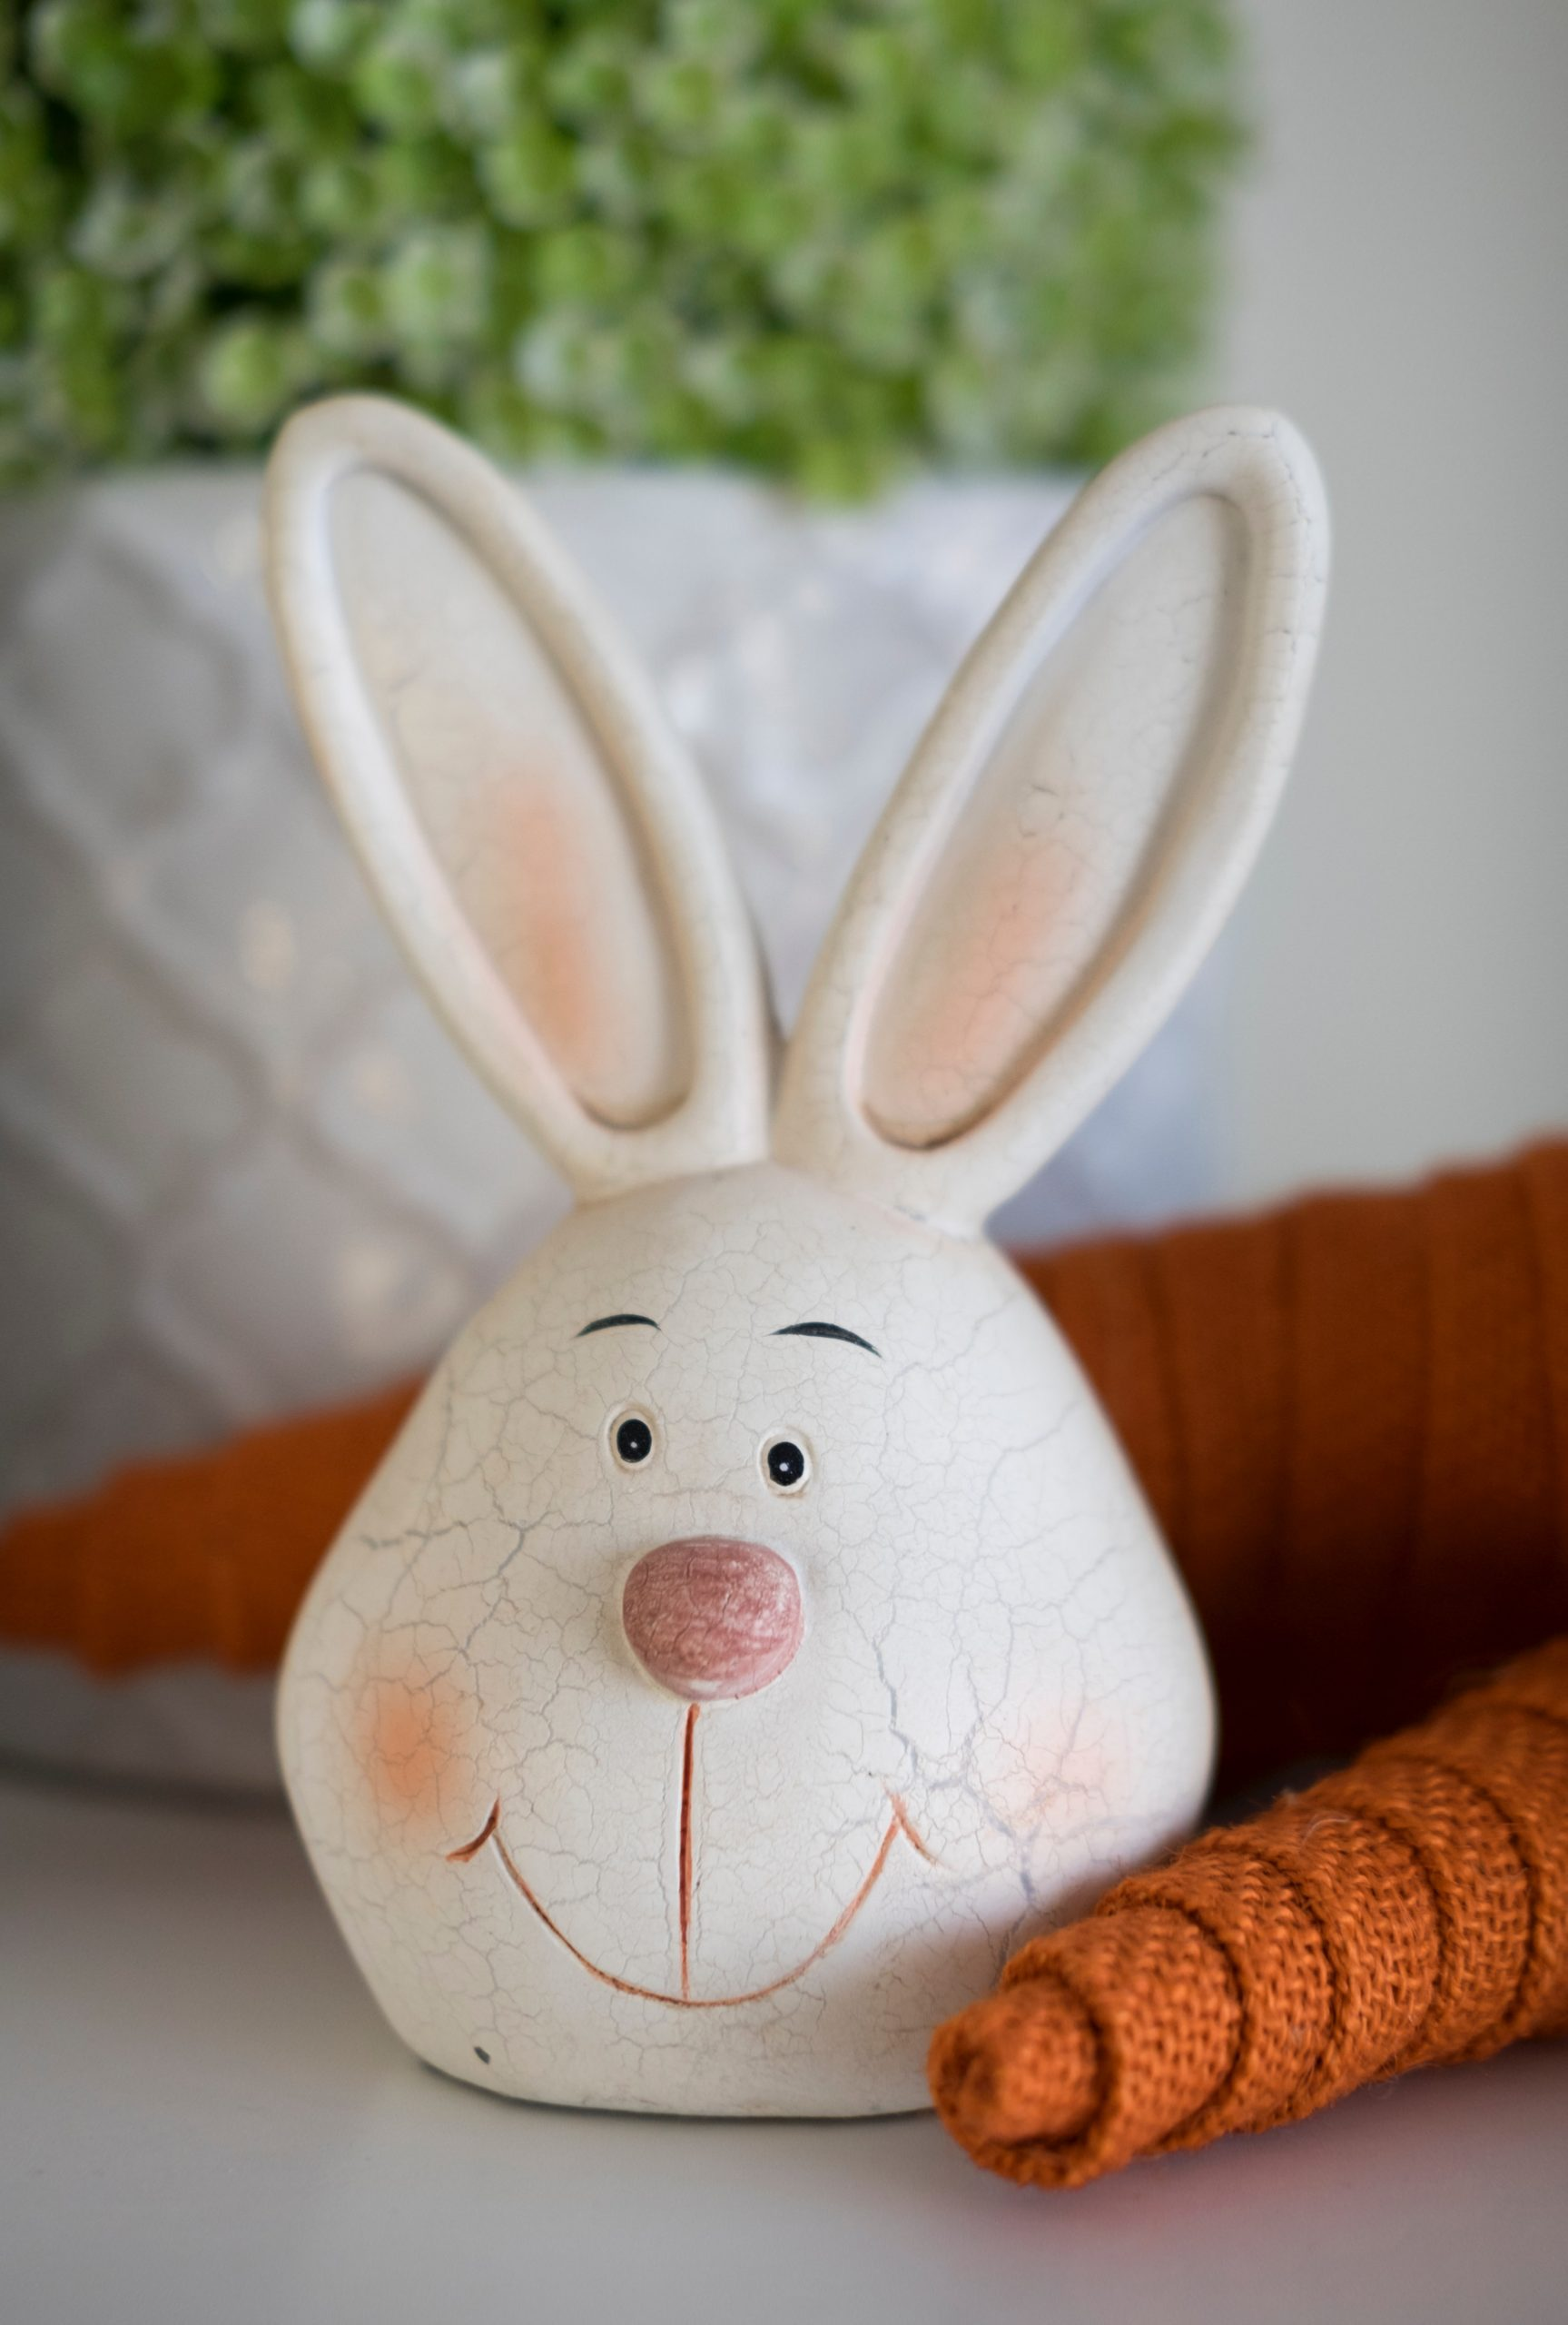 Fabric carrots are a cute DIY addition to any Easter decor. You can make them yourselves out of fabric scraps and only a little bit of time. These fabric carrots will be your new favorite Easter decor!